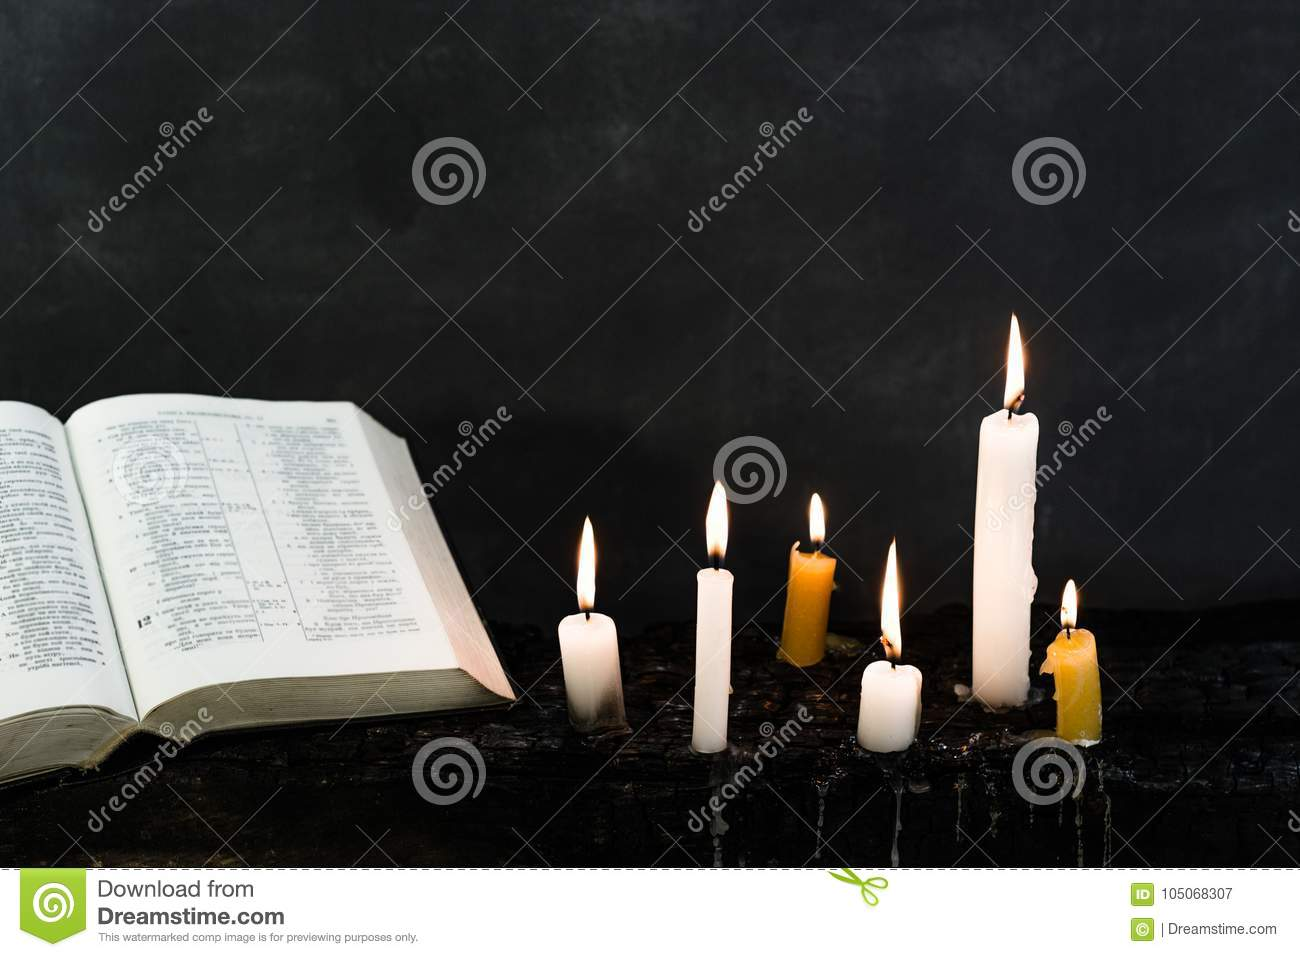 Candles on an old wooden burnt table. Beautiful dark background. Religious concept.